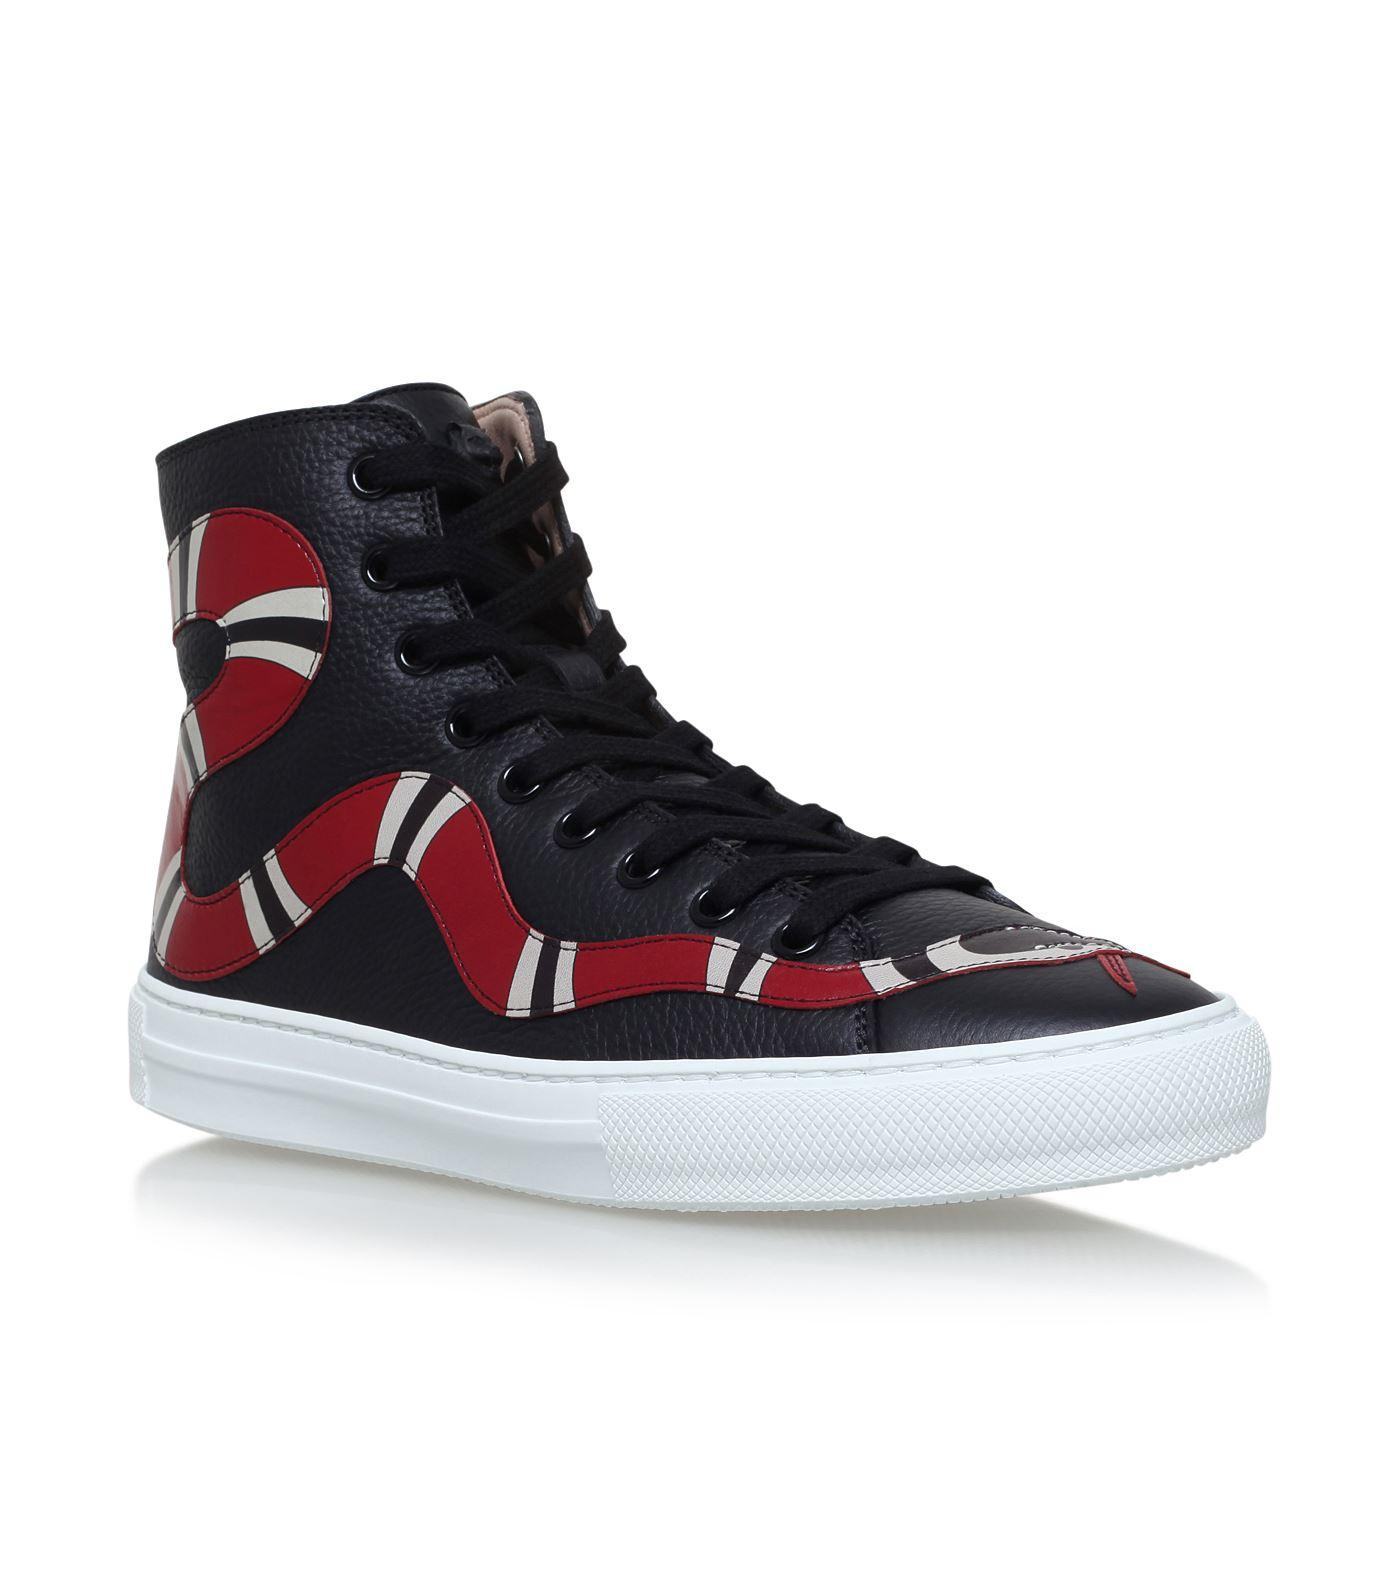 gucci shoes black snake. gallery gucci shoes black snake e